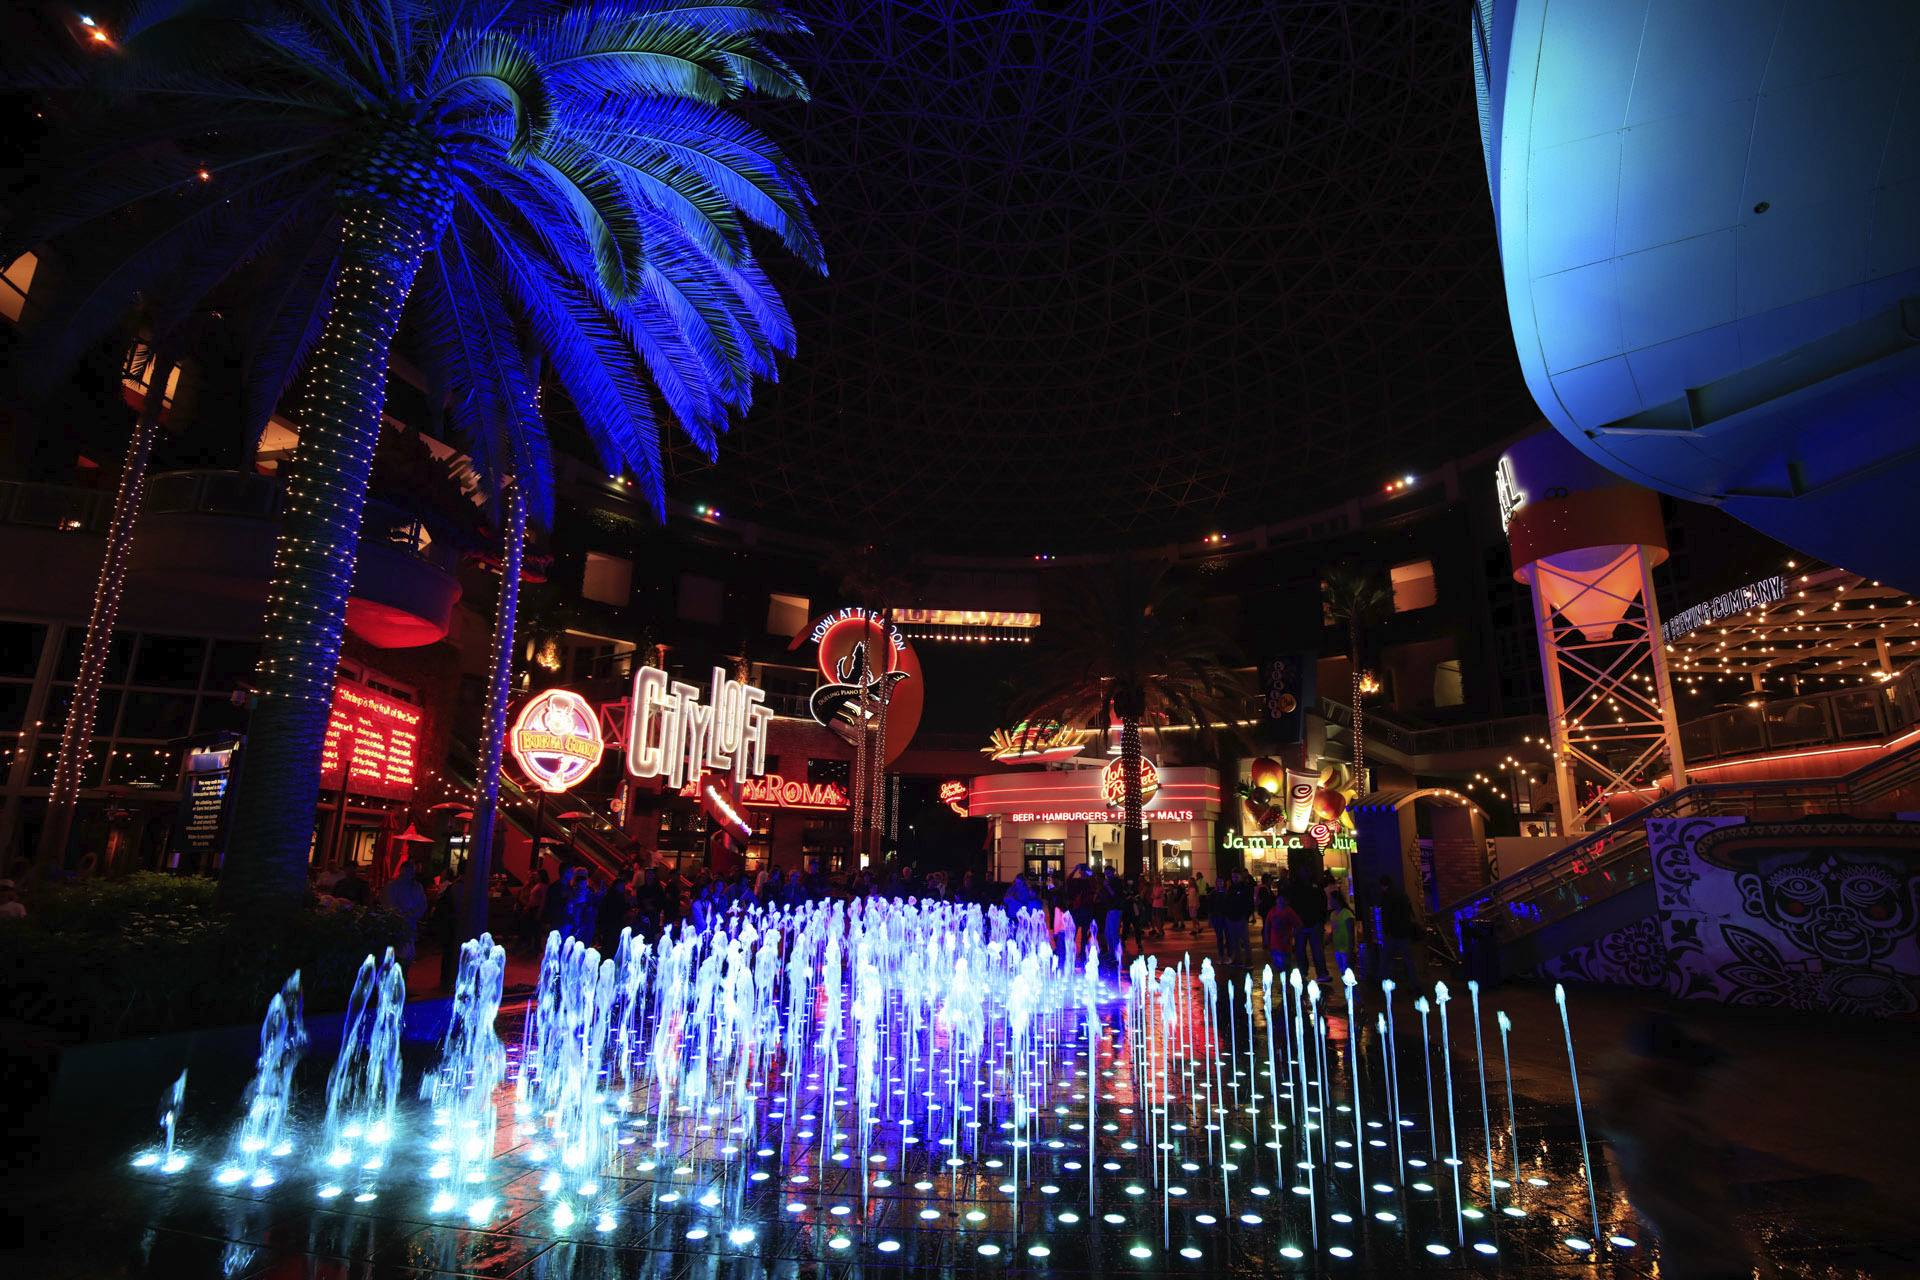 Universal CityWalk at night